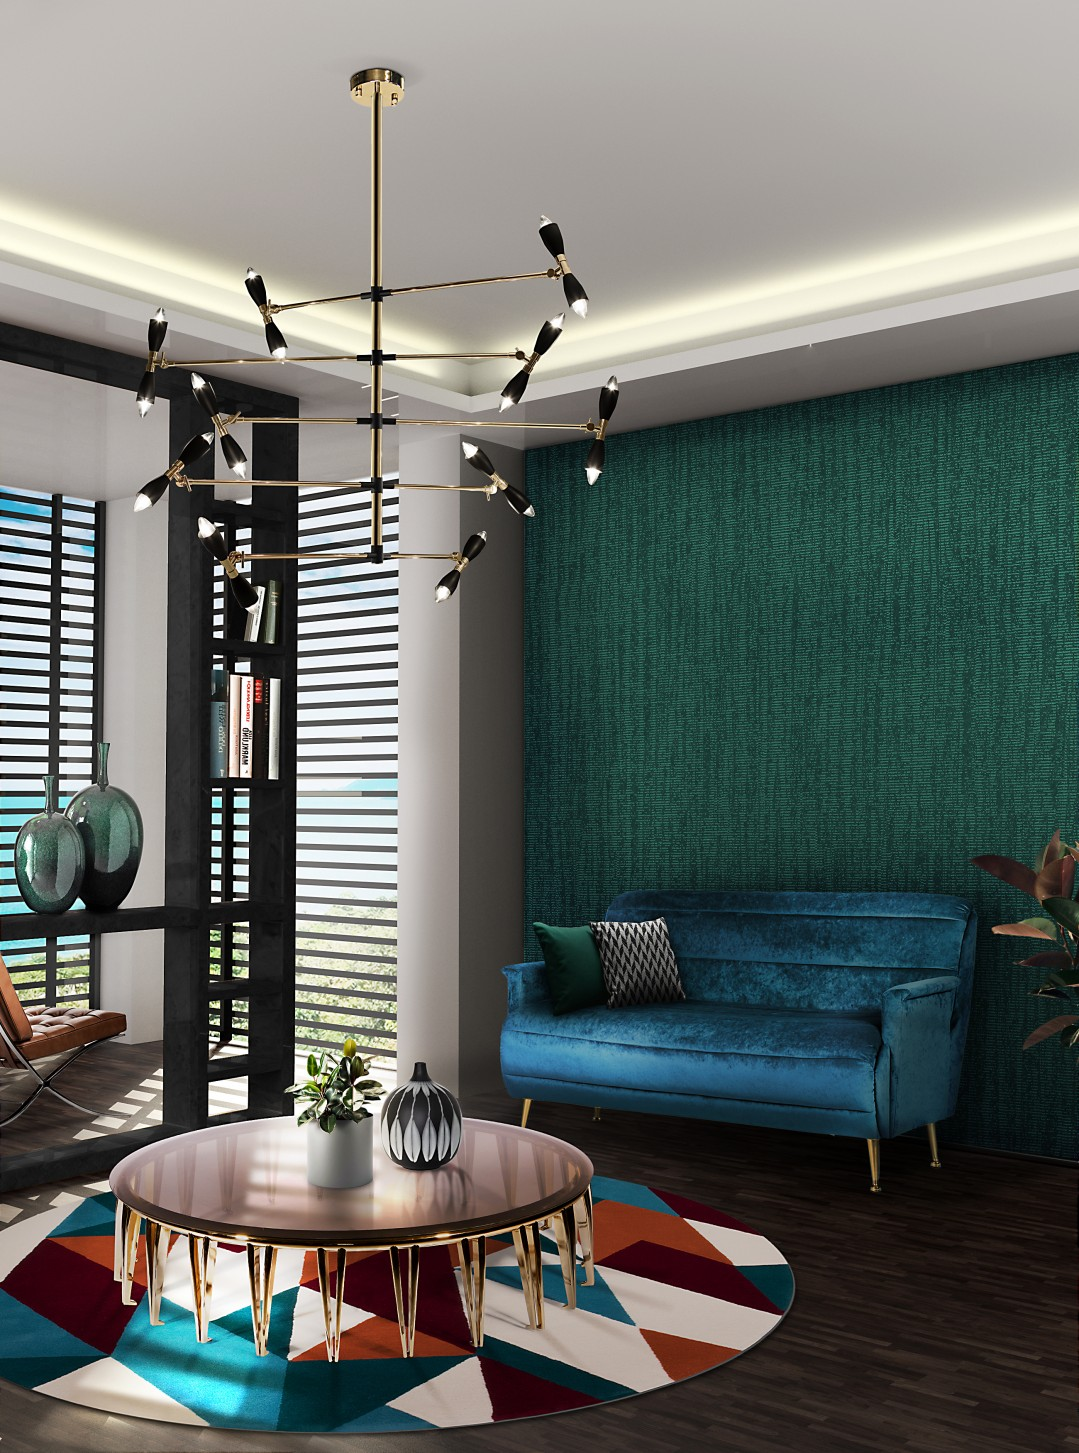 6 Green Living Room Designs That Are Going To Blow Your Mind green living room designs 6 Green Living Room Designs That Are Going To Blow Your Mind 6 Green Living Room Designs That Are Going To Blow Your Mind 3